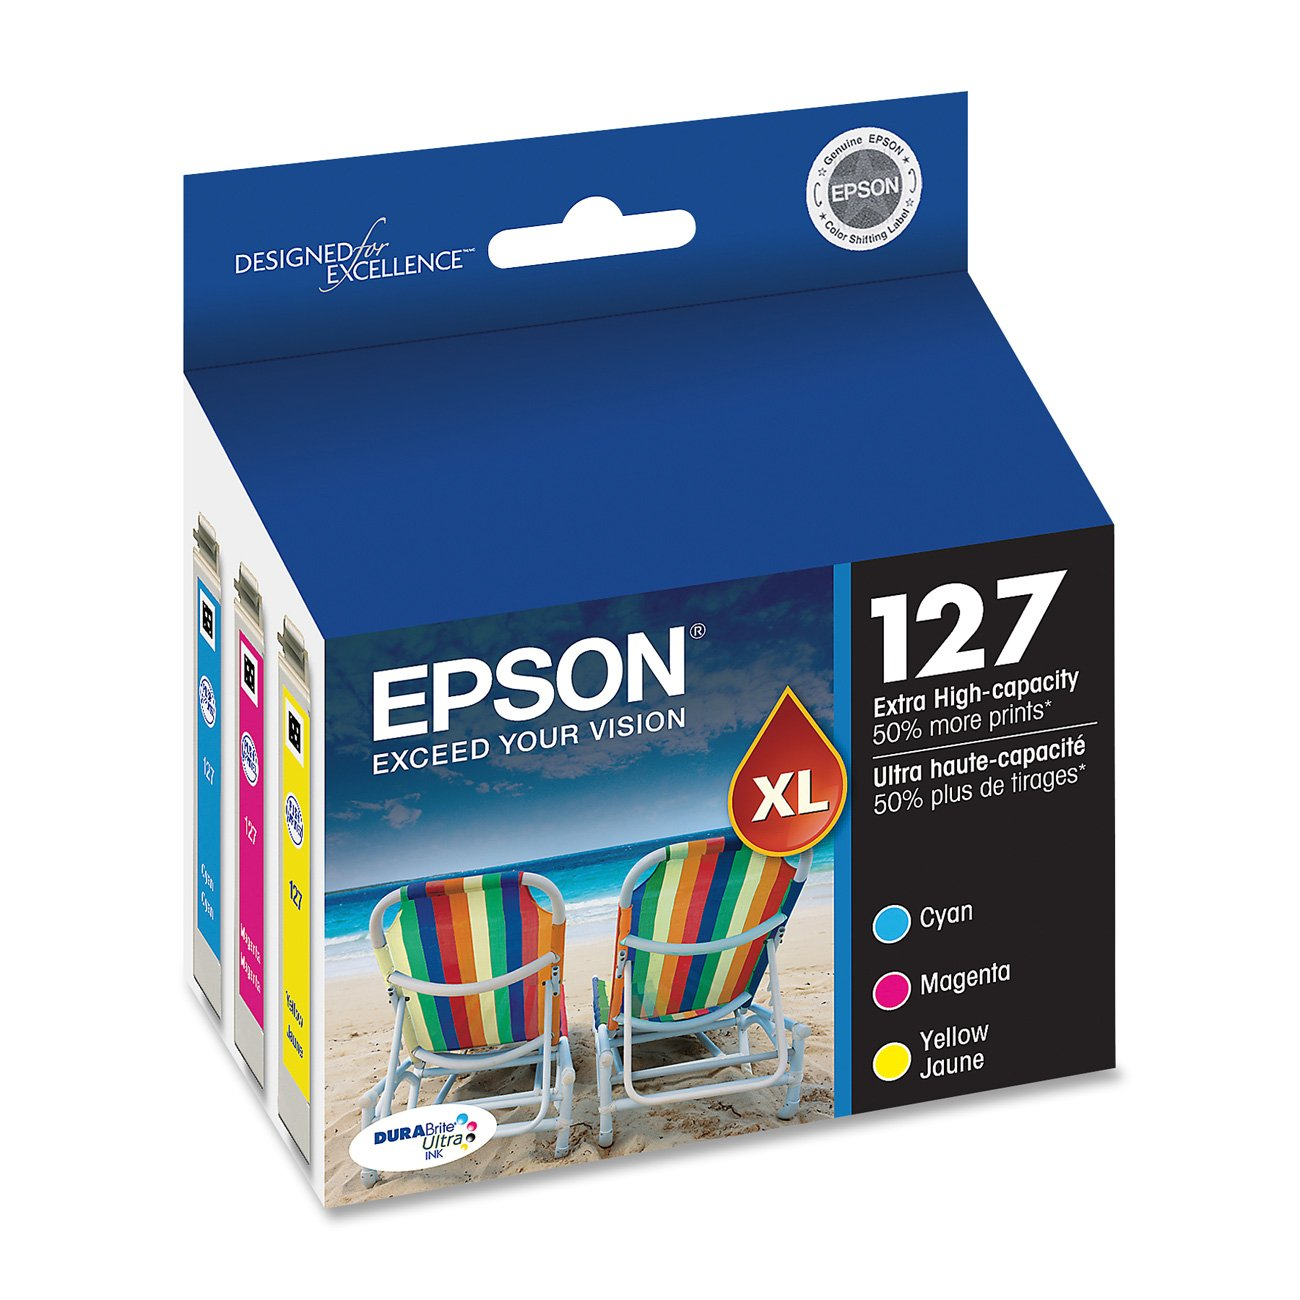 Epson DURABrite T127520 Ultra 127 Extra High-capacity Inkjet Cartridge Color Multipack-Cyan/ Magenta/ Yellow